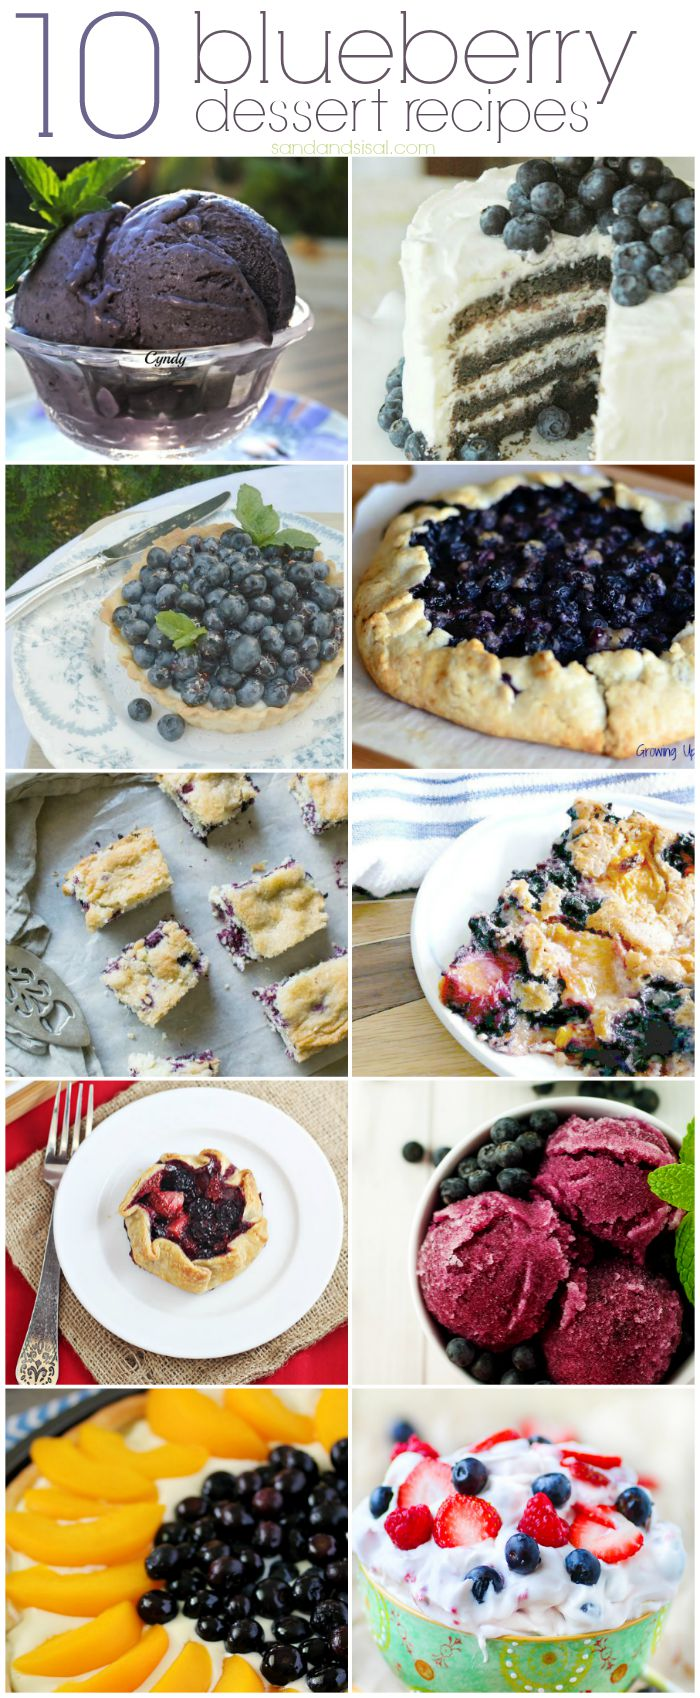 10 Blueberry Dessert Recipes